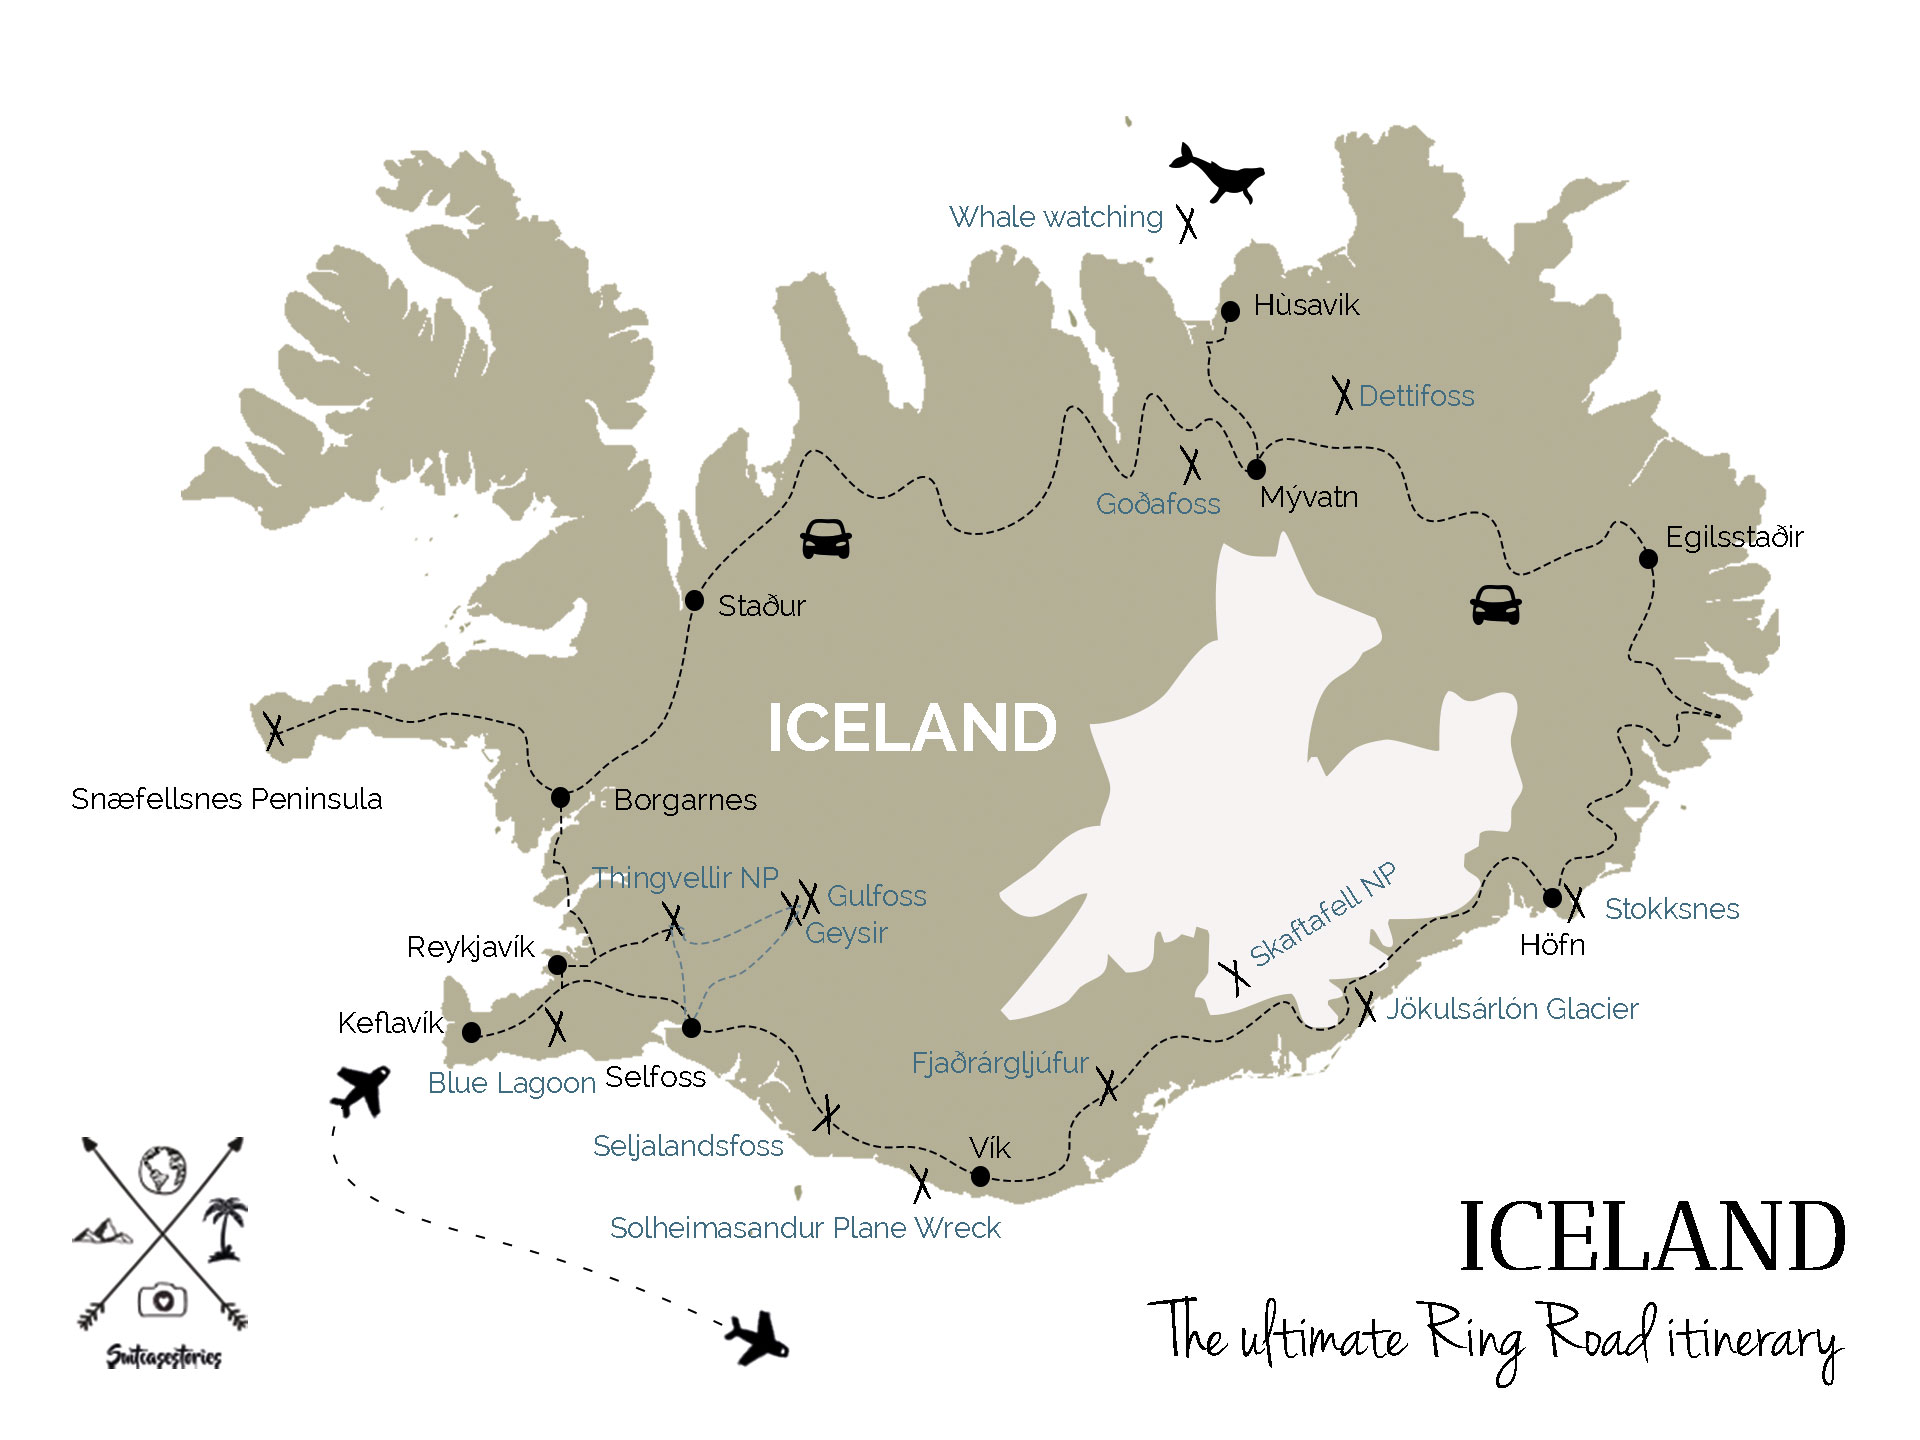 Iceland the Ultimate Ring Road travel itinerary